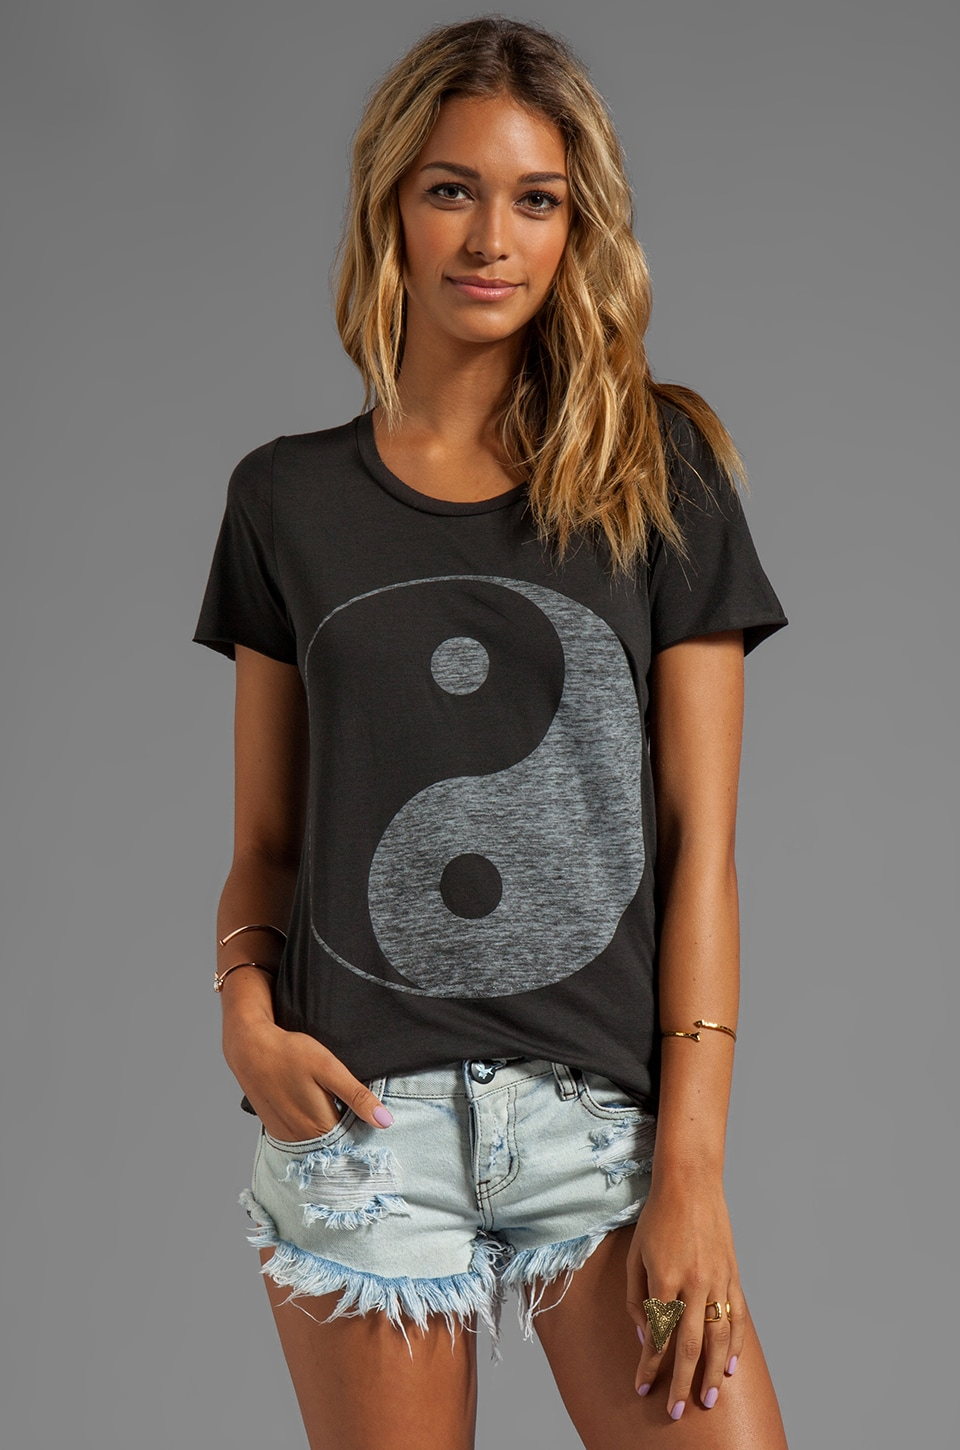 Zoe Karssen Yin Yang Loose Fit Short Sleeve Tee in Pirate Black